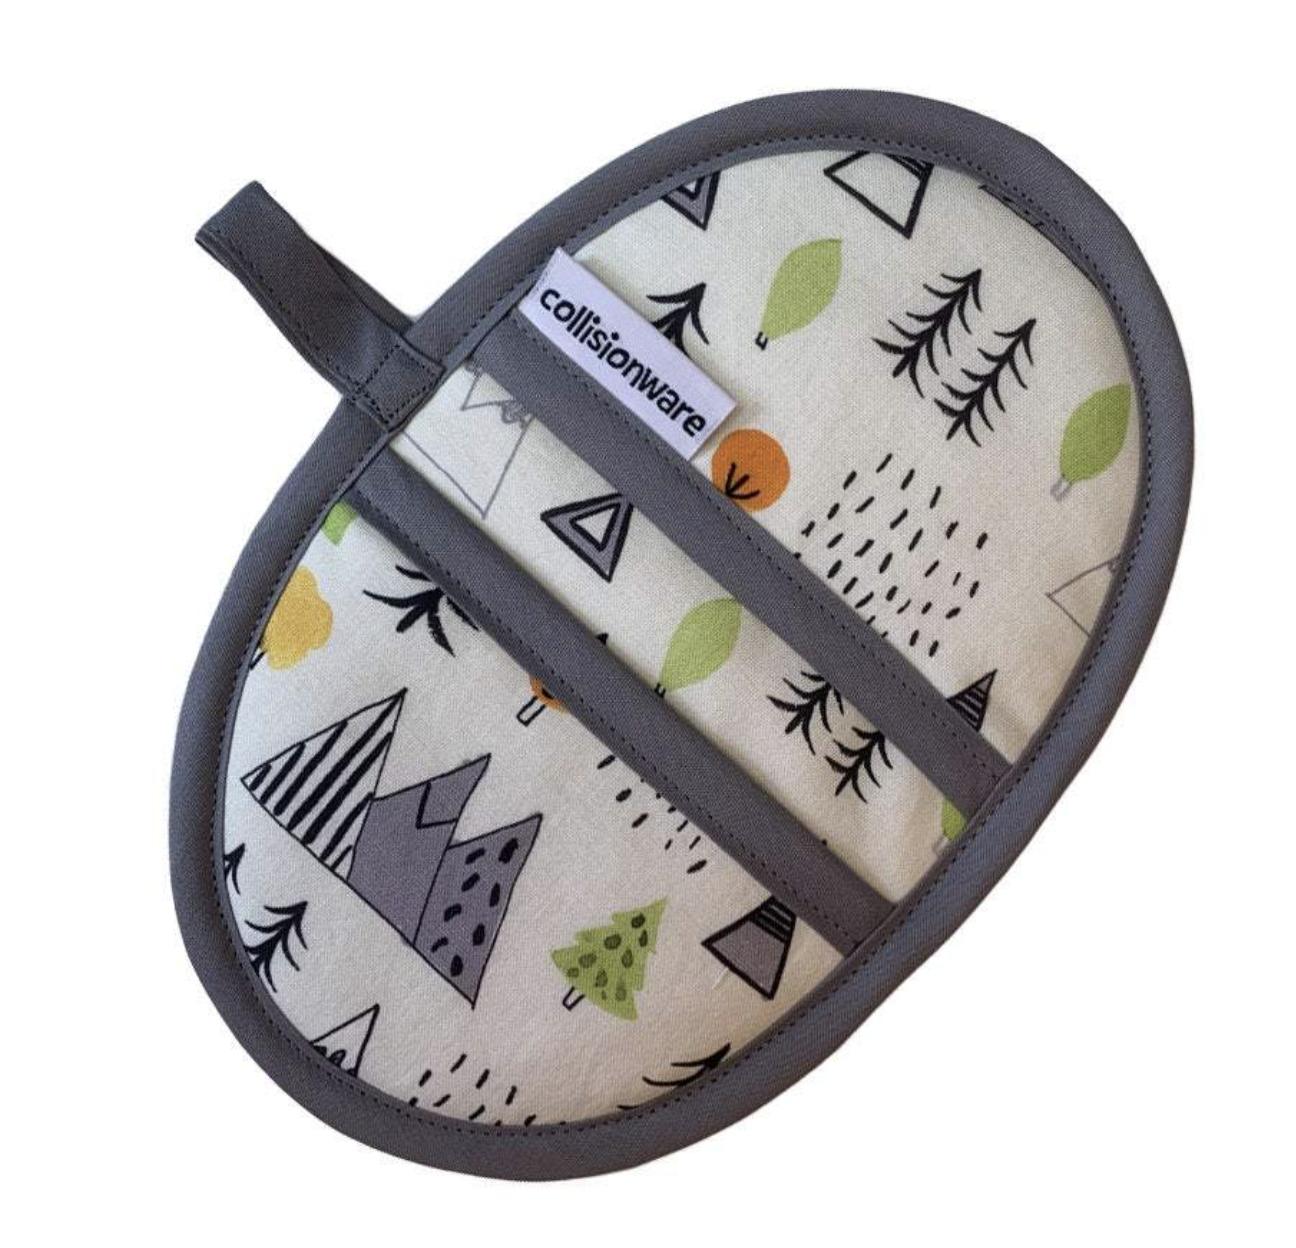 Pot Holder - Oval - Choose From Designs